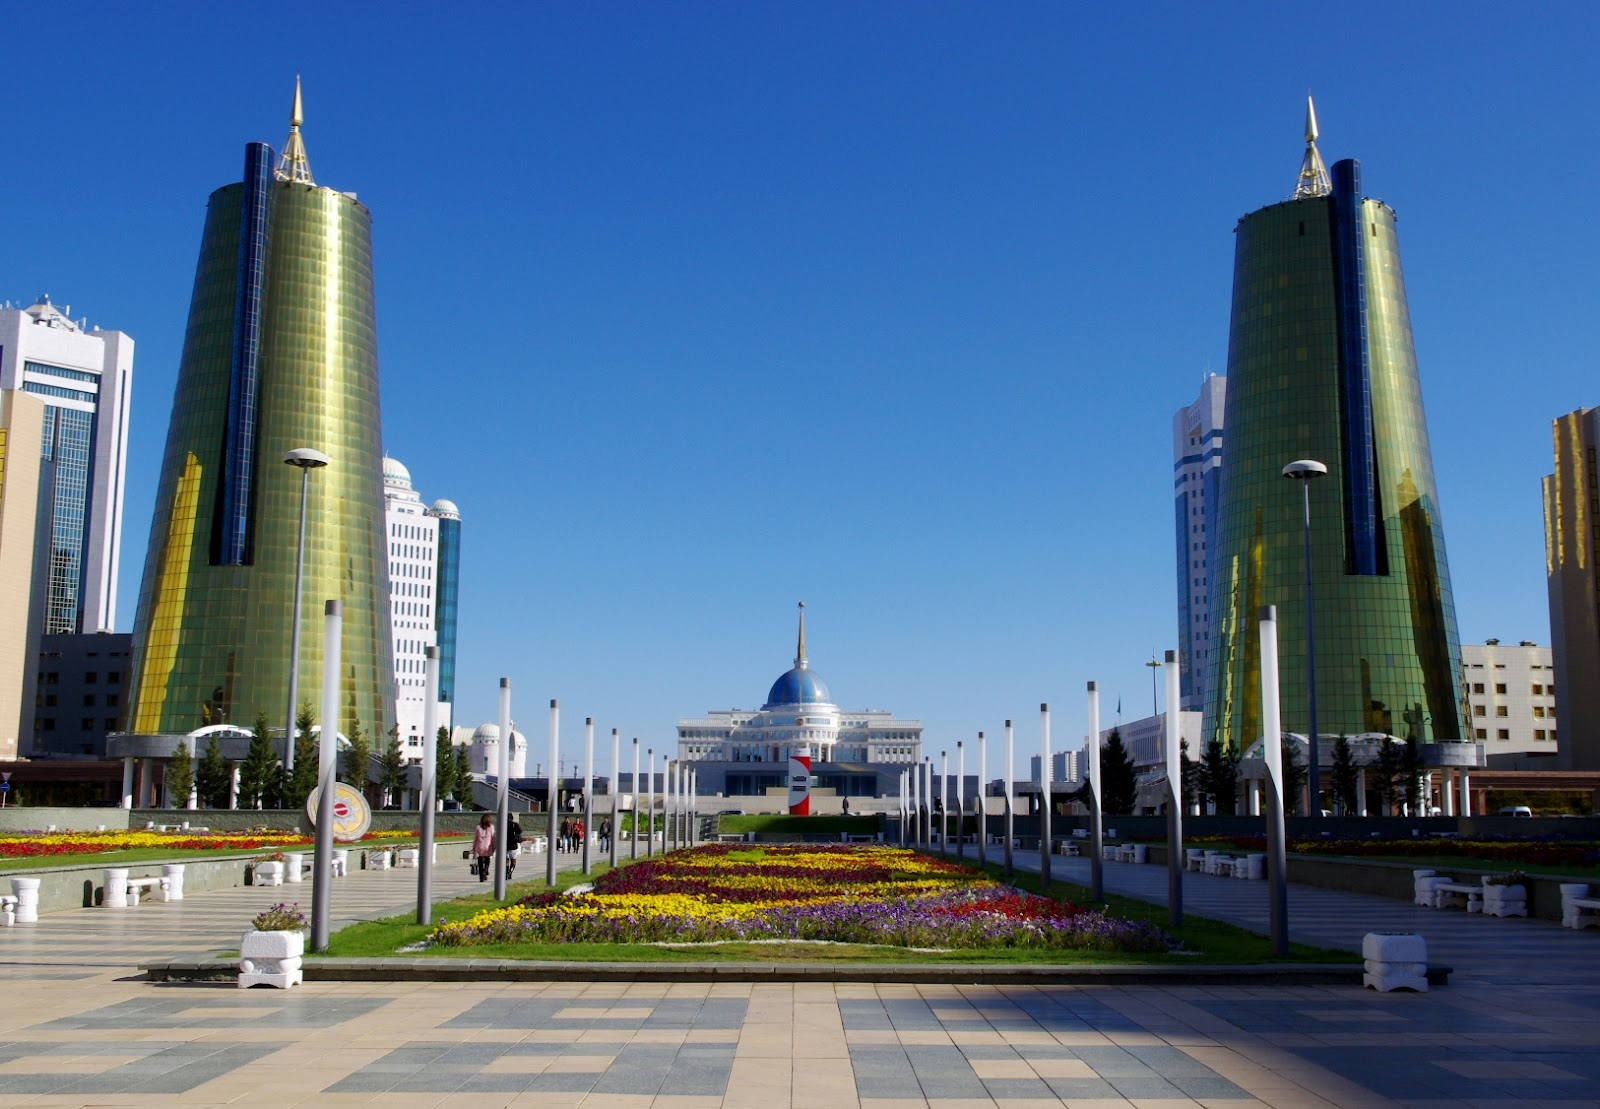 kazakhstan - photo #3